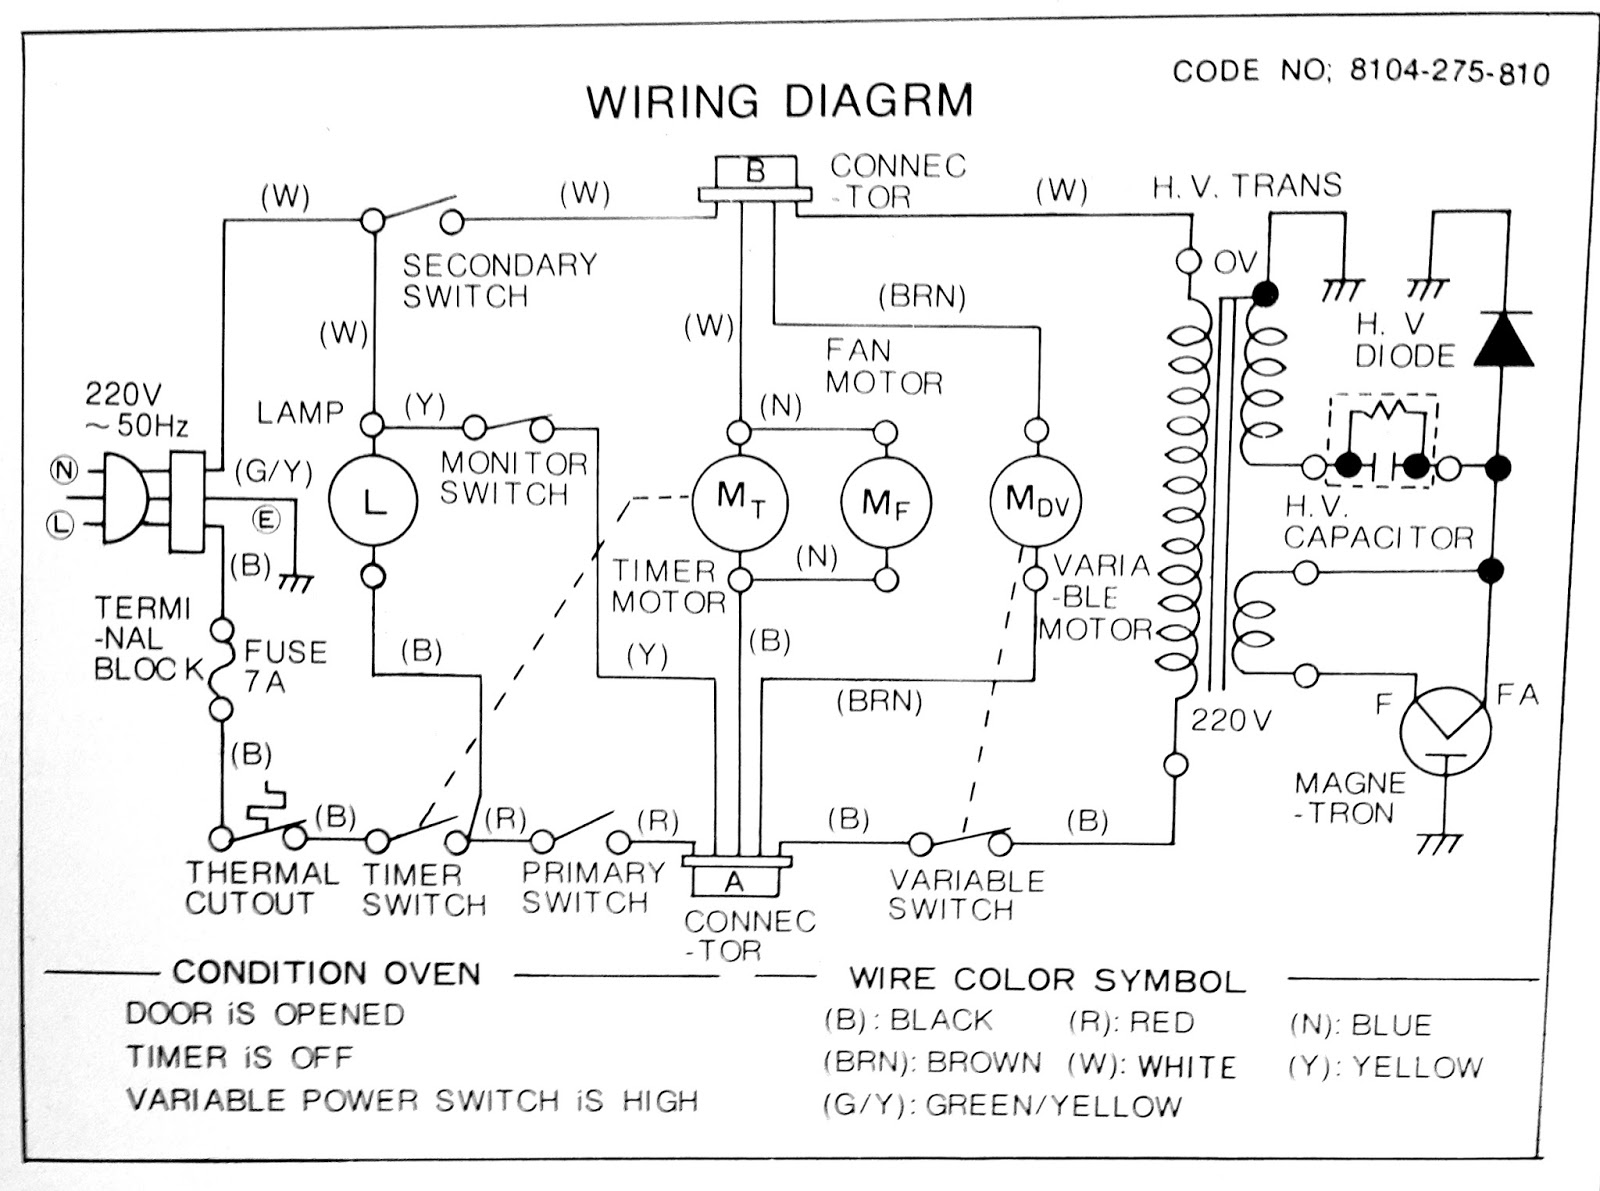 oven wiring diagram nz dcc bus diagrams esalvage microwave teka mw 170